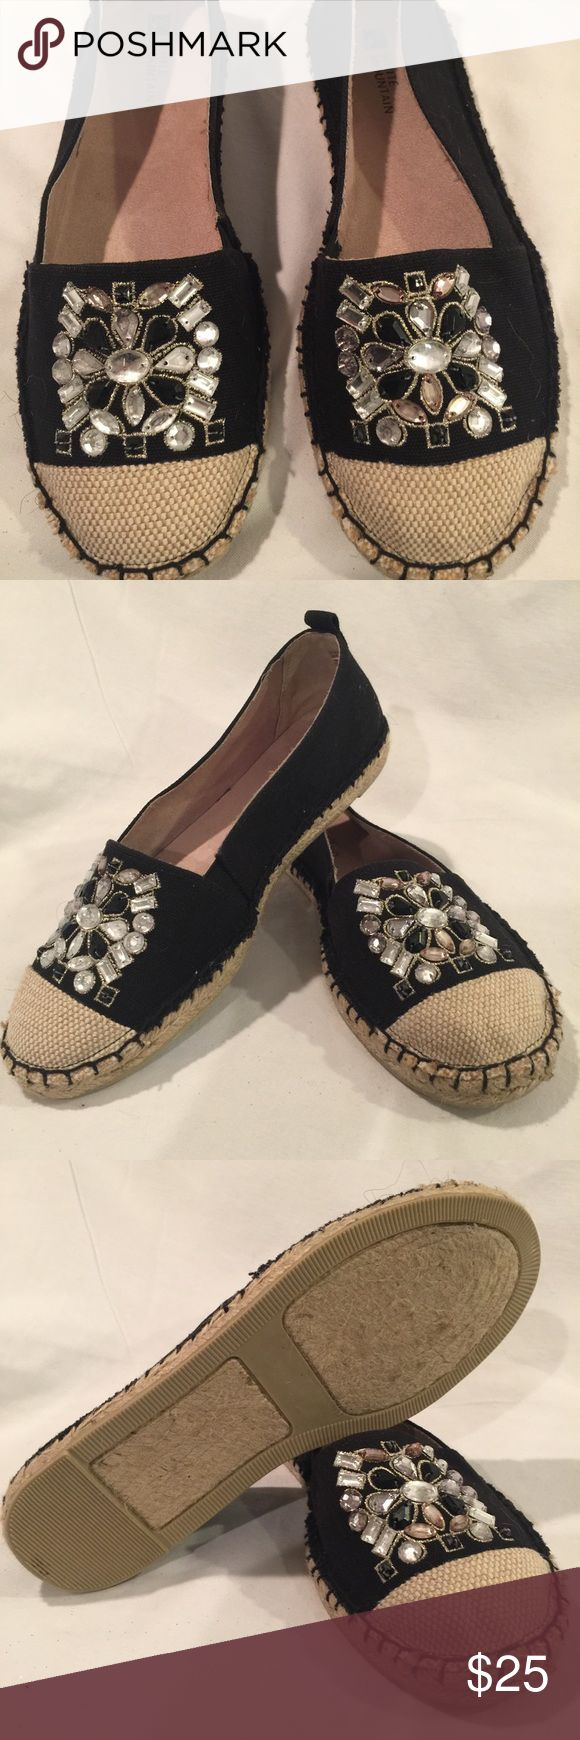 White Mountain Jeweled Espadrilles The jewels are so cool on these espadrilles. The chunky stitching in blacks looks great against the tan. New never worn. White Mountain Shoes Espadrilles